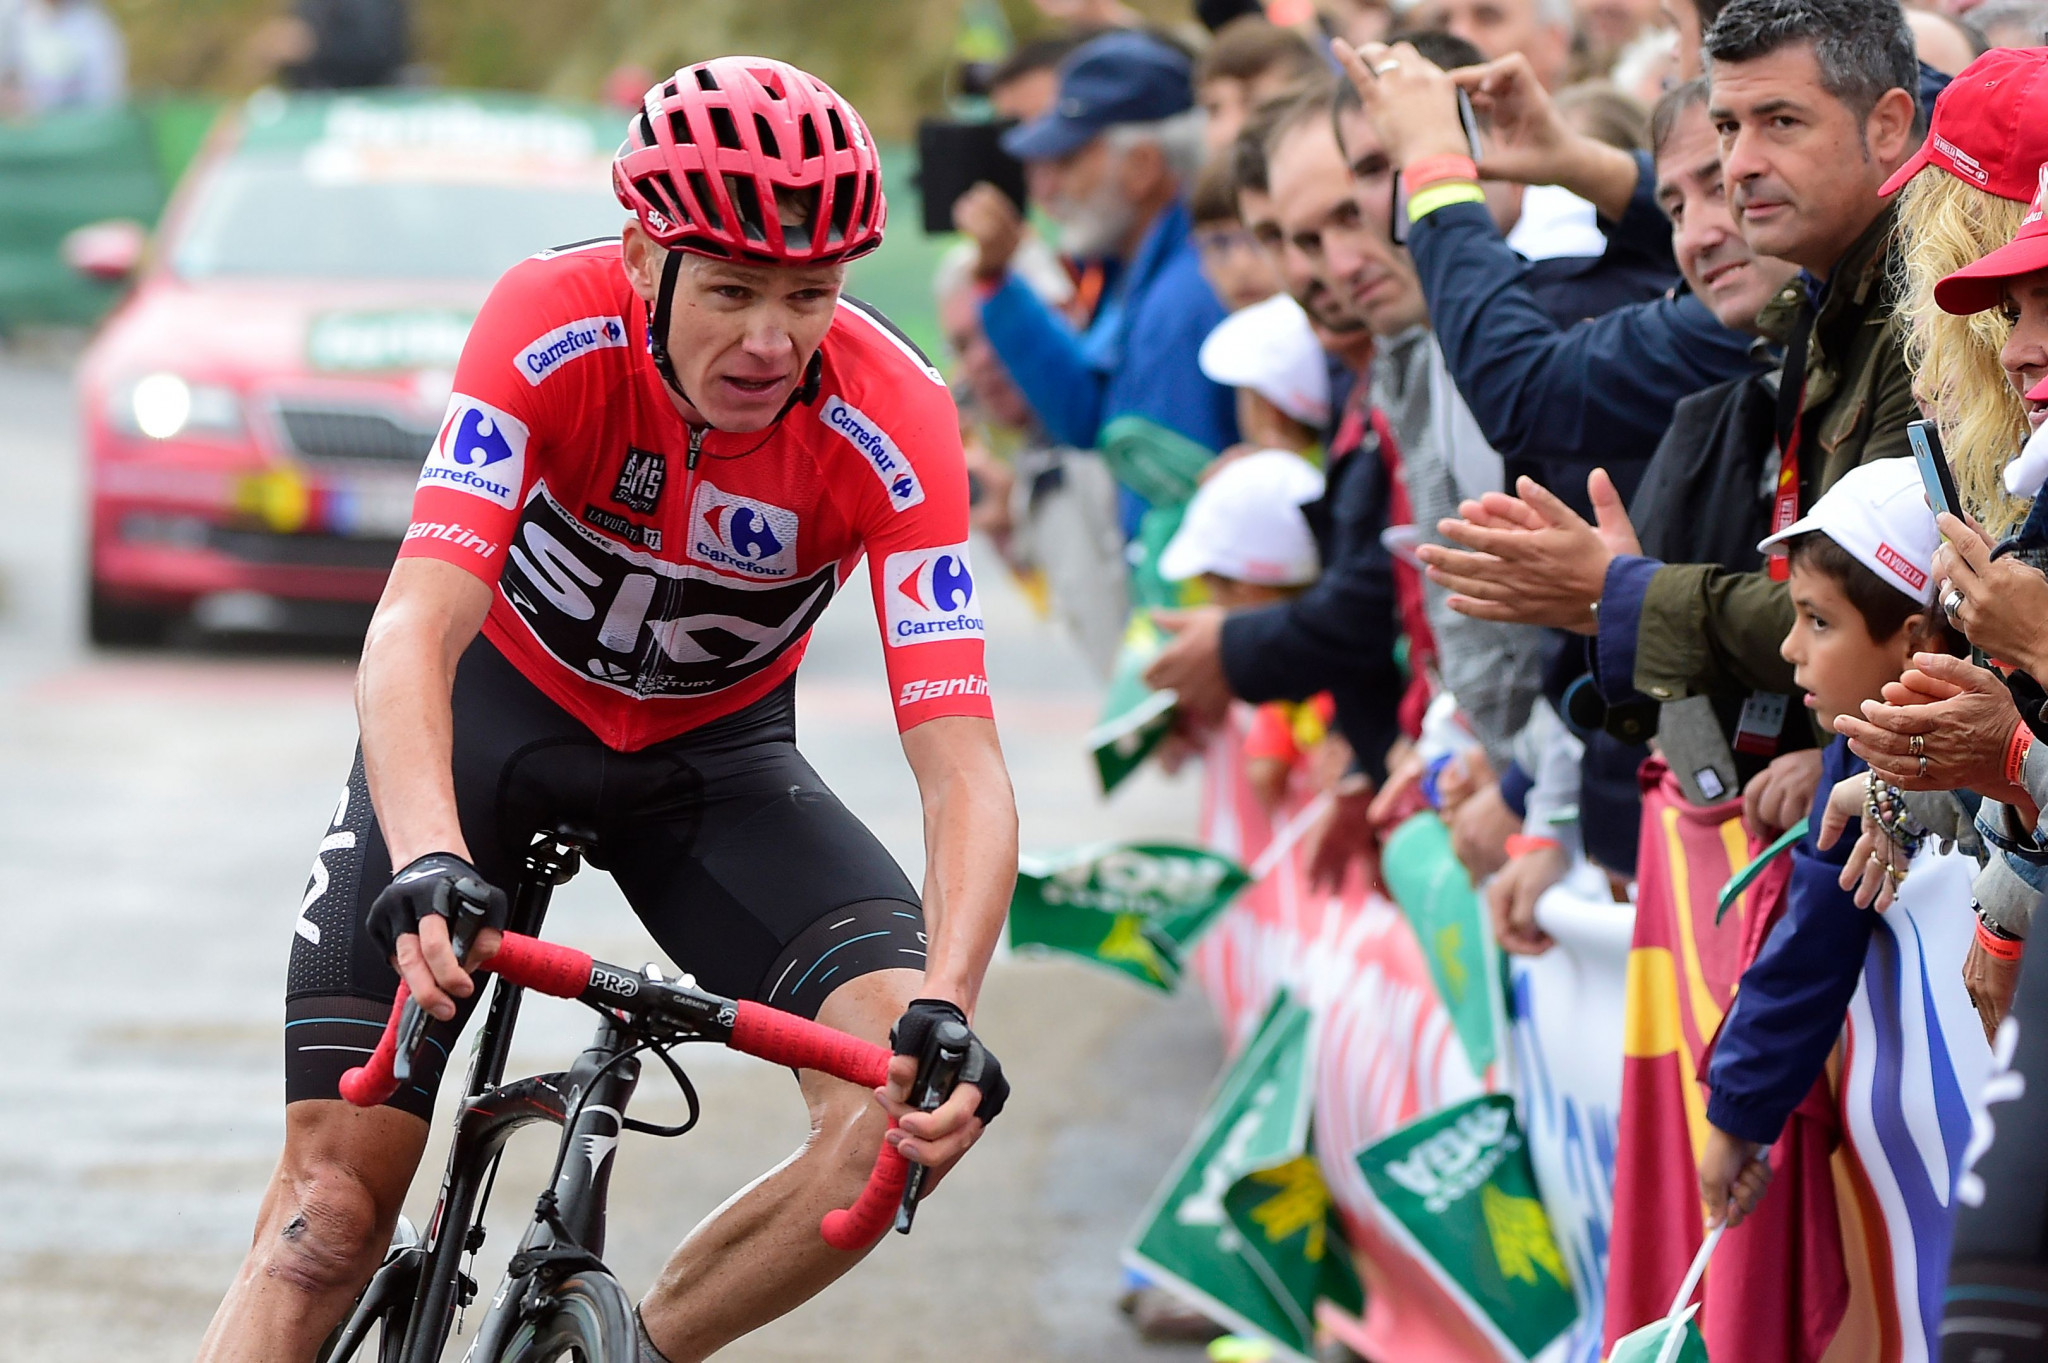 Froome sees Vuelta a España lead cut as Denifl earns solo stage win